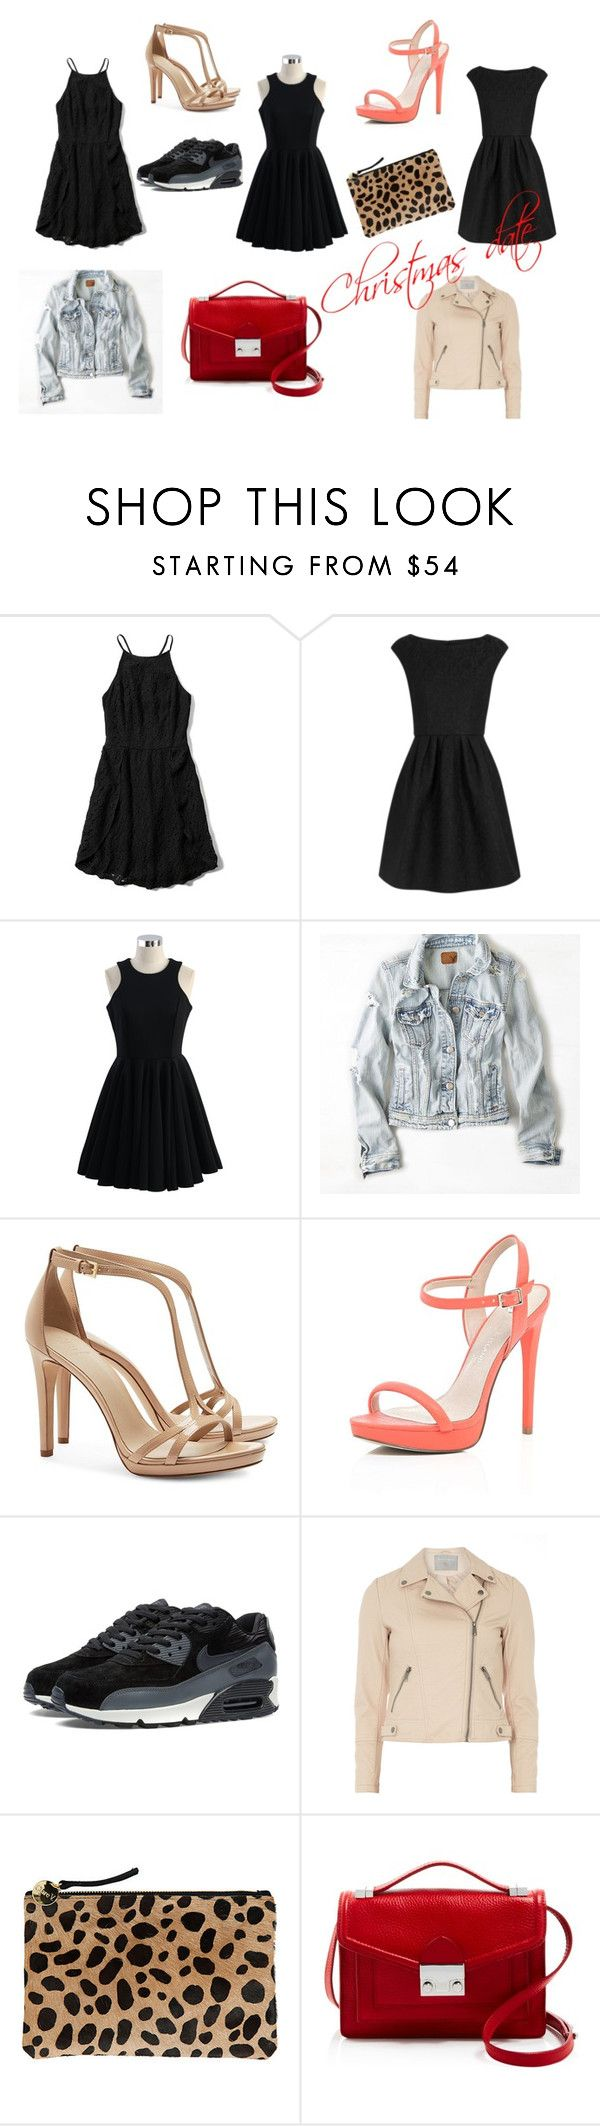 """Christmas Date"" by clarairawan on Polyvore featuring Abercrombie & Fitch, Boutique Moschino, Chicwish, American Eagle Outfitters, Tory Burch, River Island, Dorothy Perkins, Clare V. and Loeffler Randall"